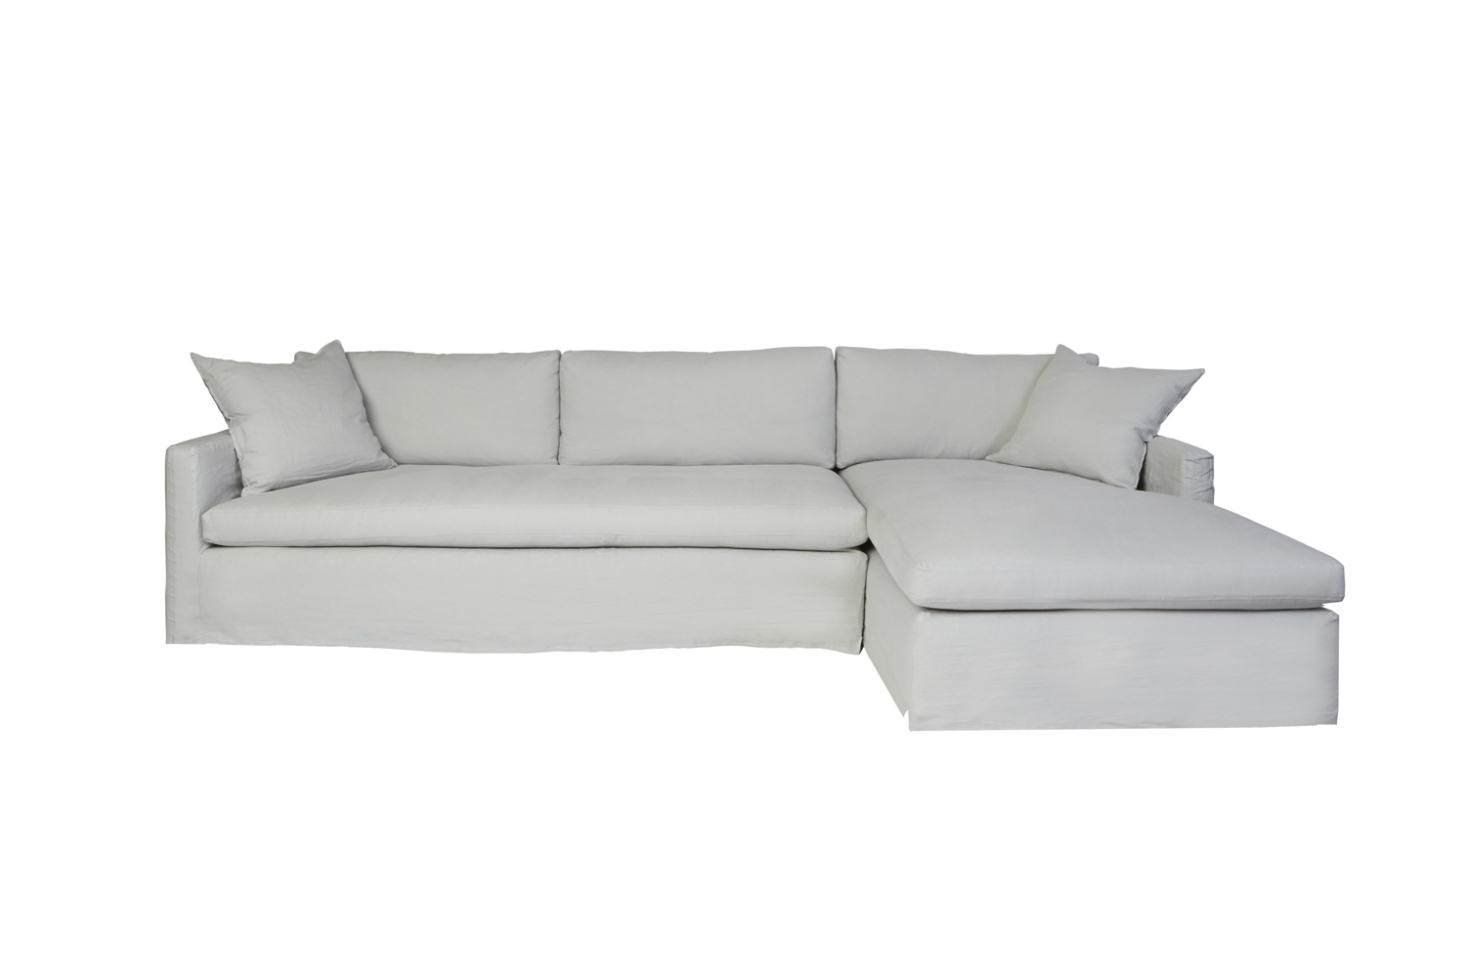 10 Easy Pieces: Sectional Chaise Sofas – Remodelista Inside Elm Grande Ii 2 Piece Sectionals (View 15 of 25)